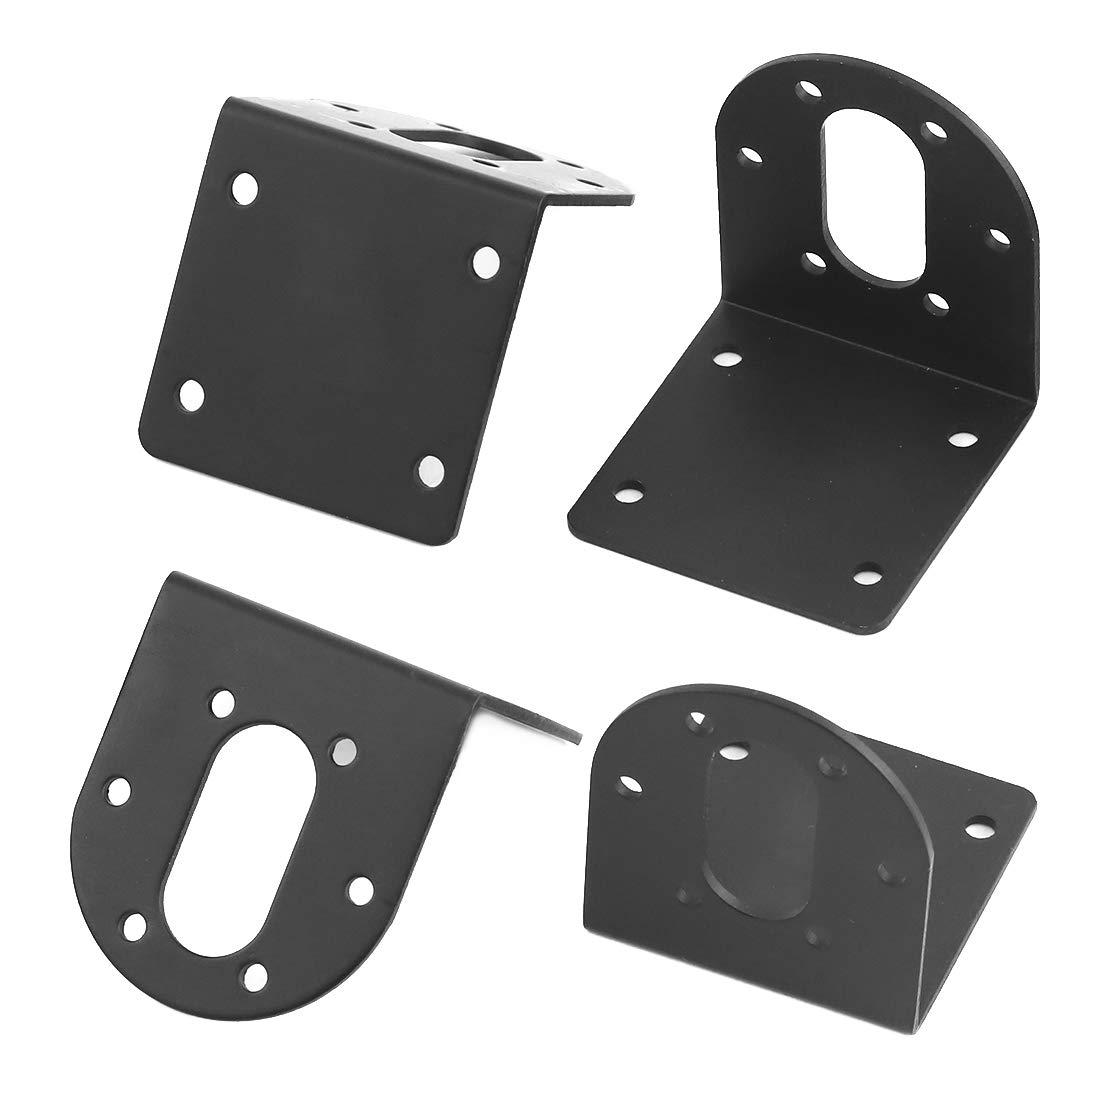 Rustark 4 Pcs 37mm Diameter DC Gear Motors Mounting Bracket Black Rust Resistance Gearbox Fixed Seat Gear Reduction Motor Holder with 4 Pcs 6mm Hex Coupling for Small Stepper Motors